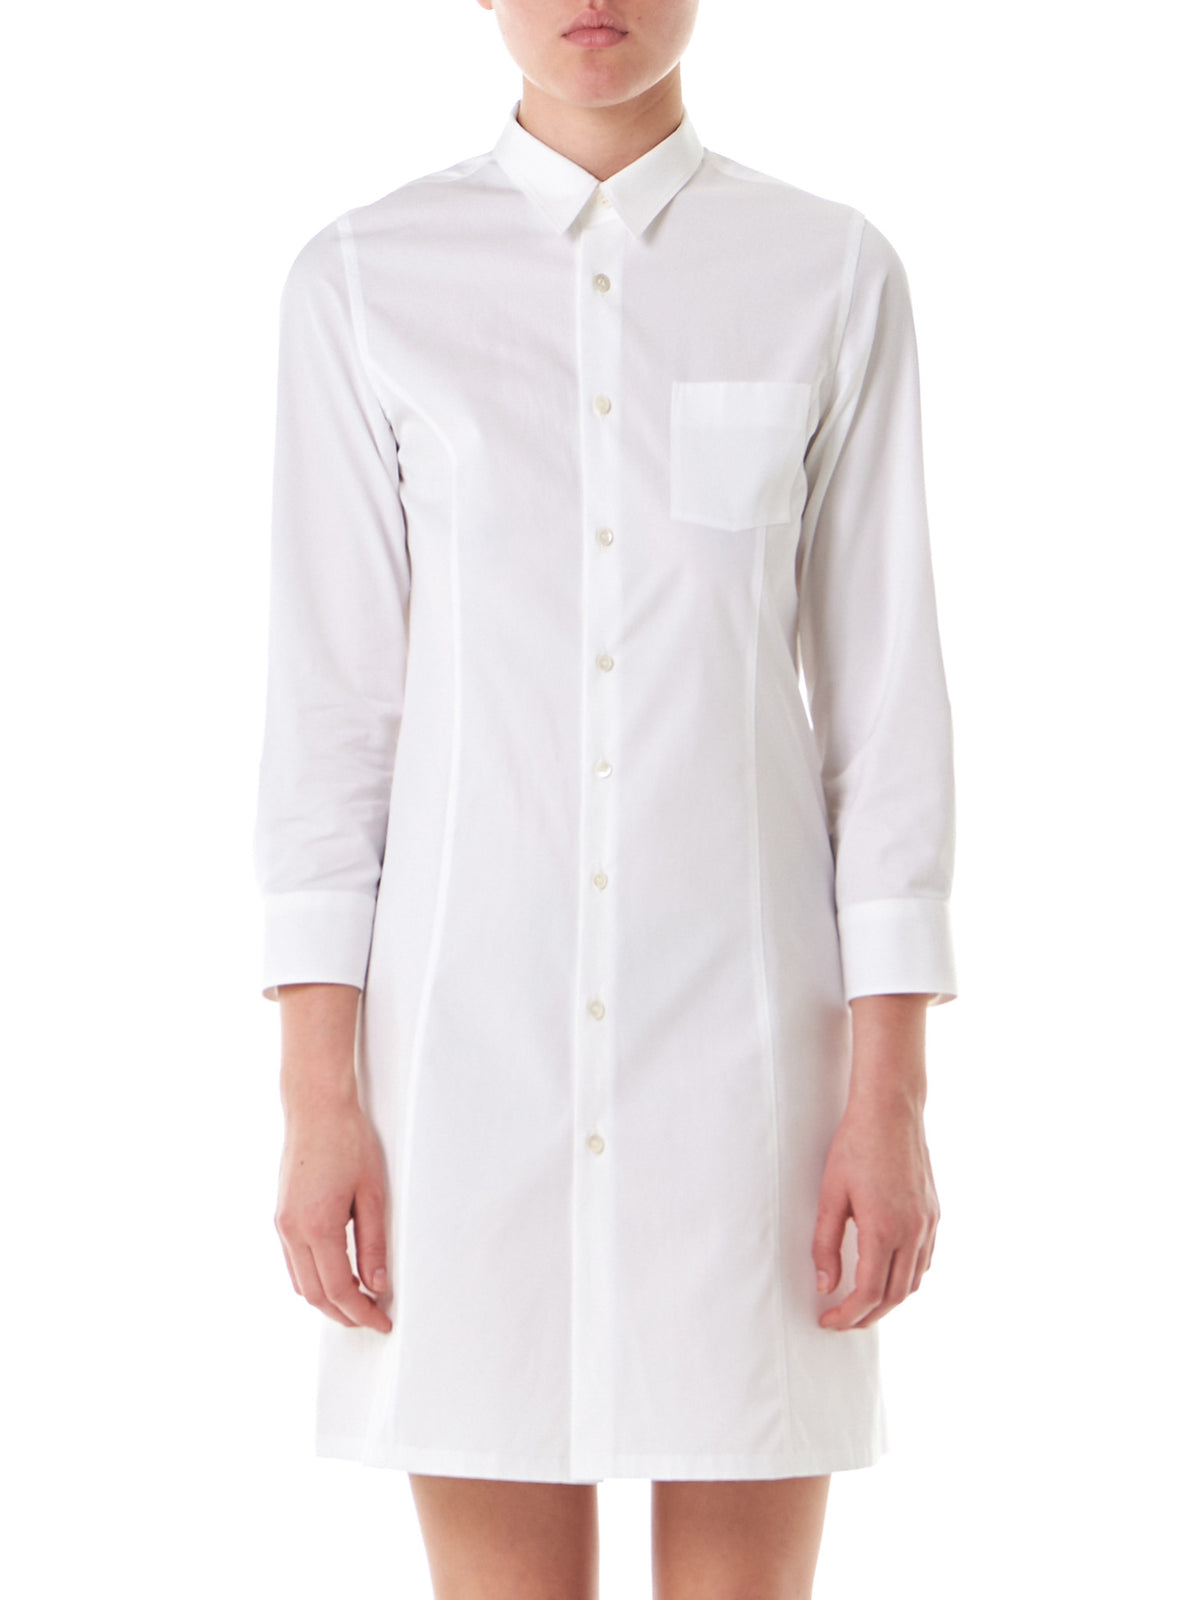 Elongated Button-Down (TS-O003-051-2) - H. Lorenzo